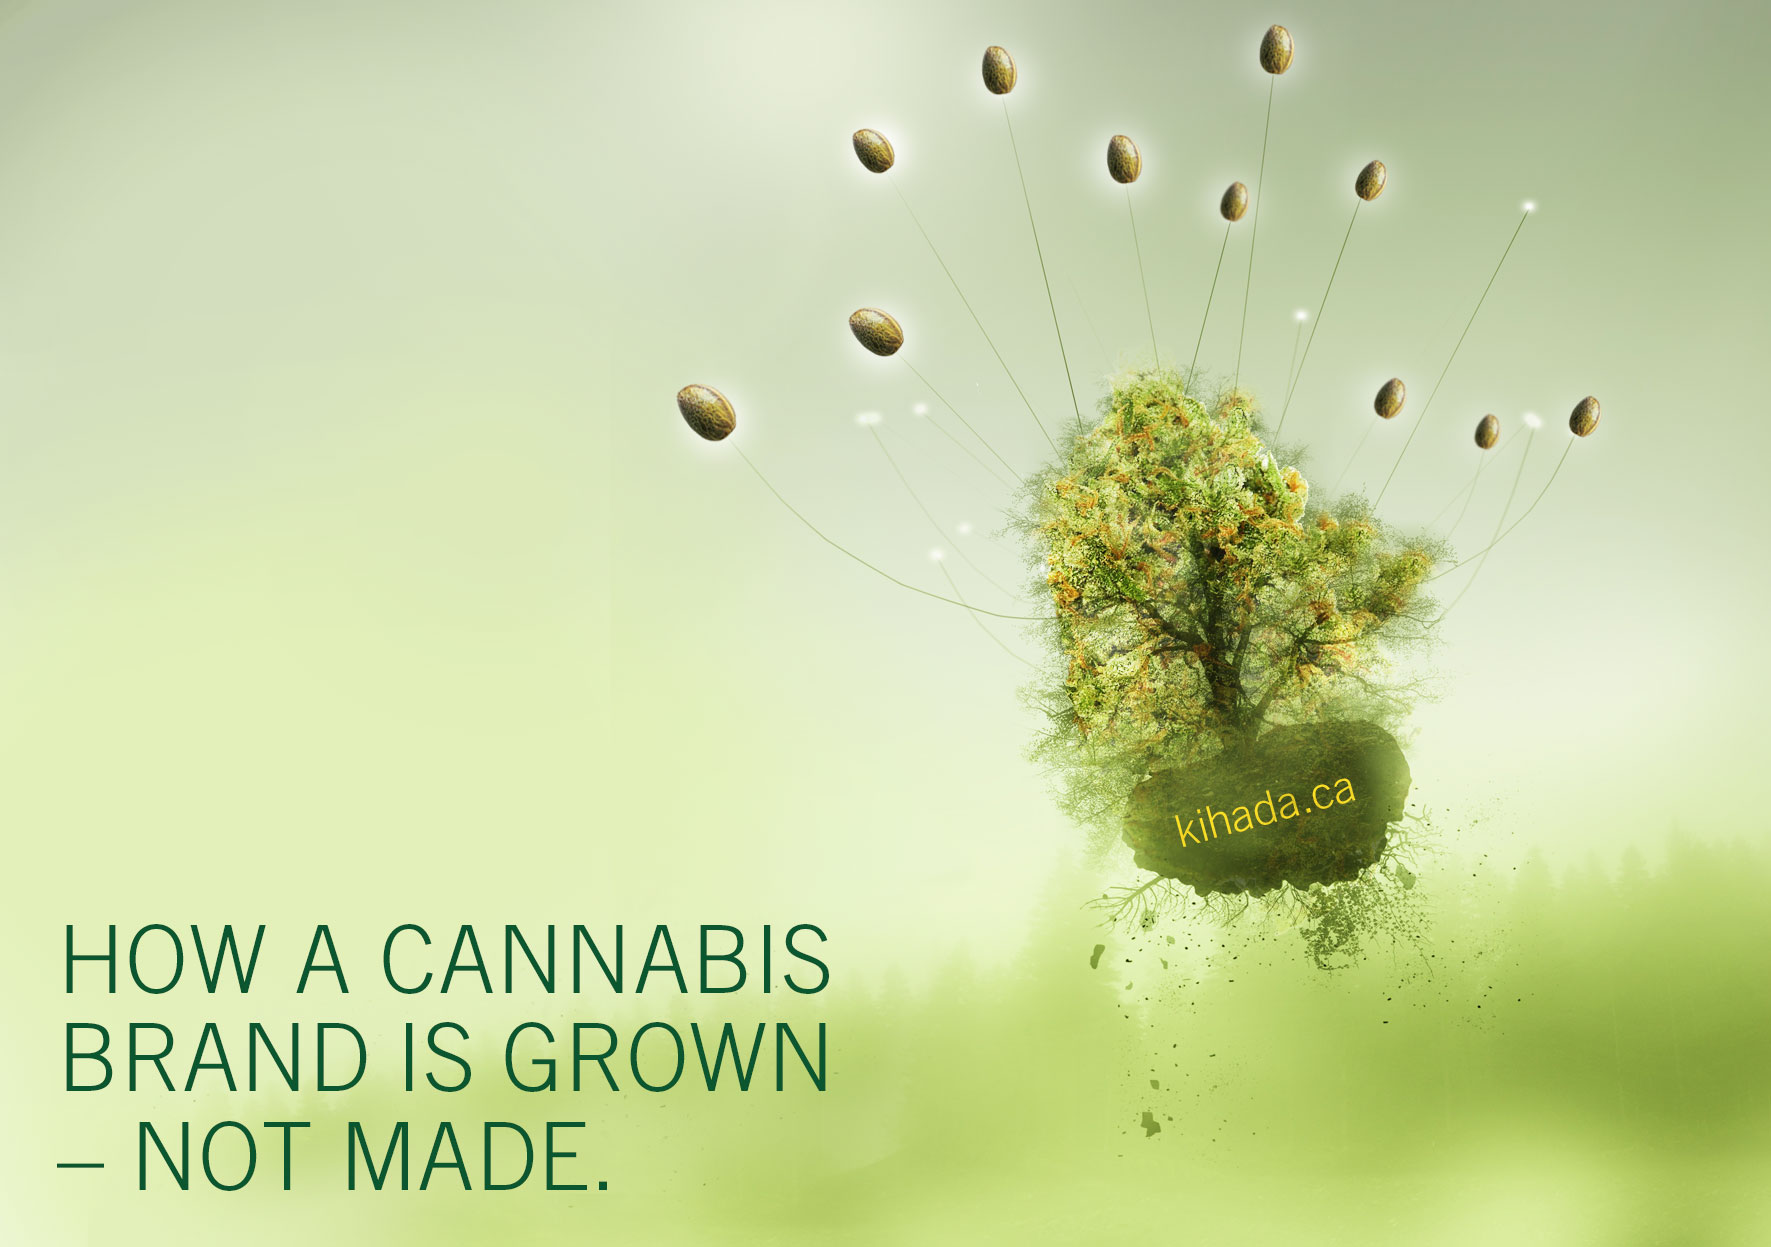 How a cannabis brand is grown not made